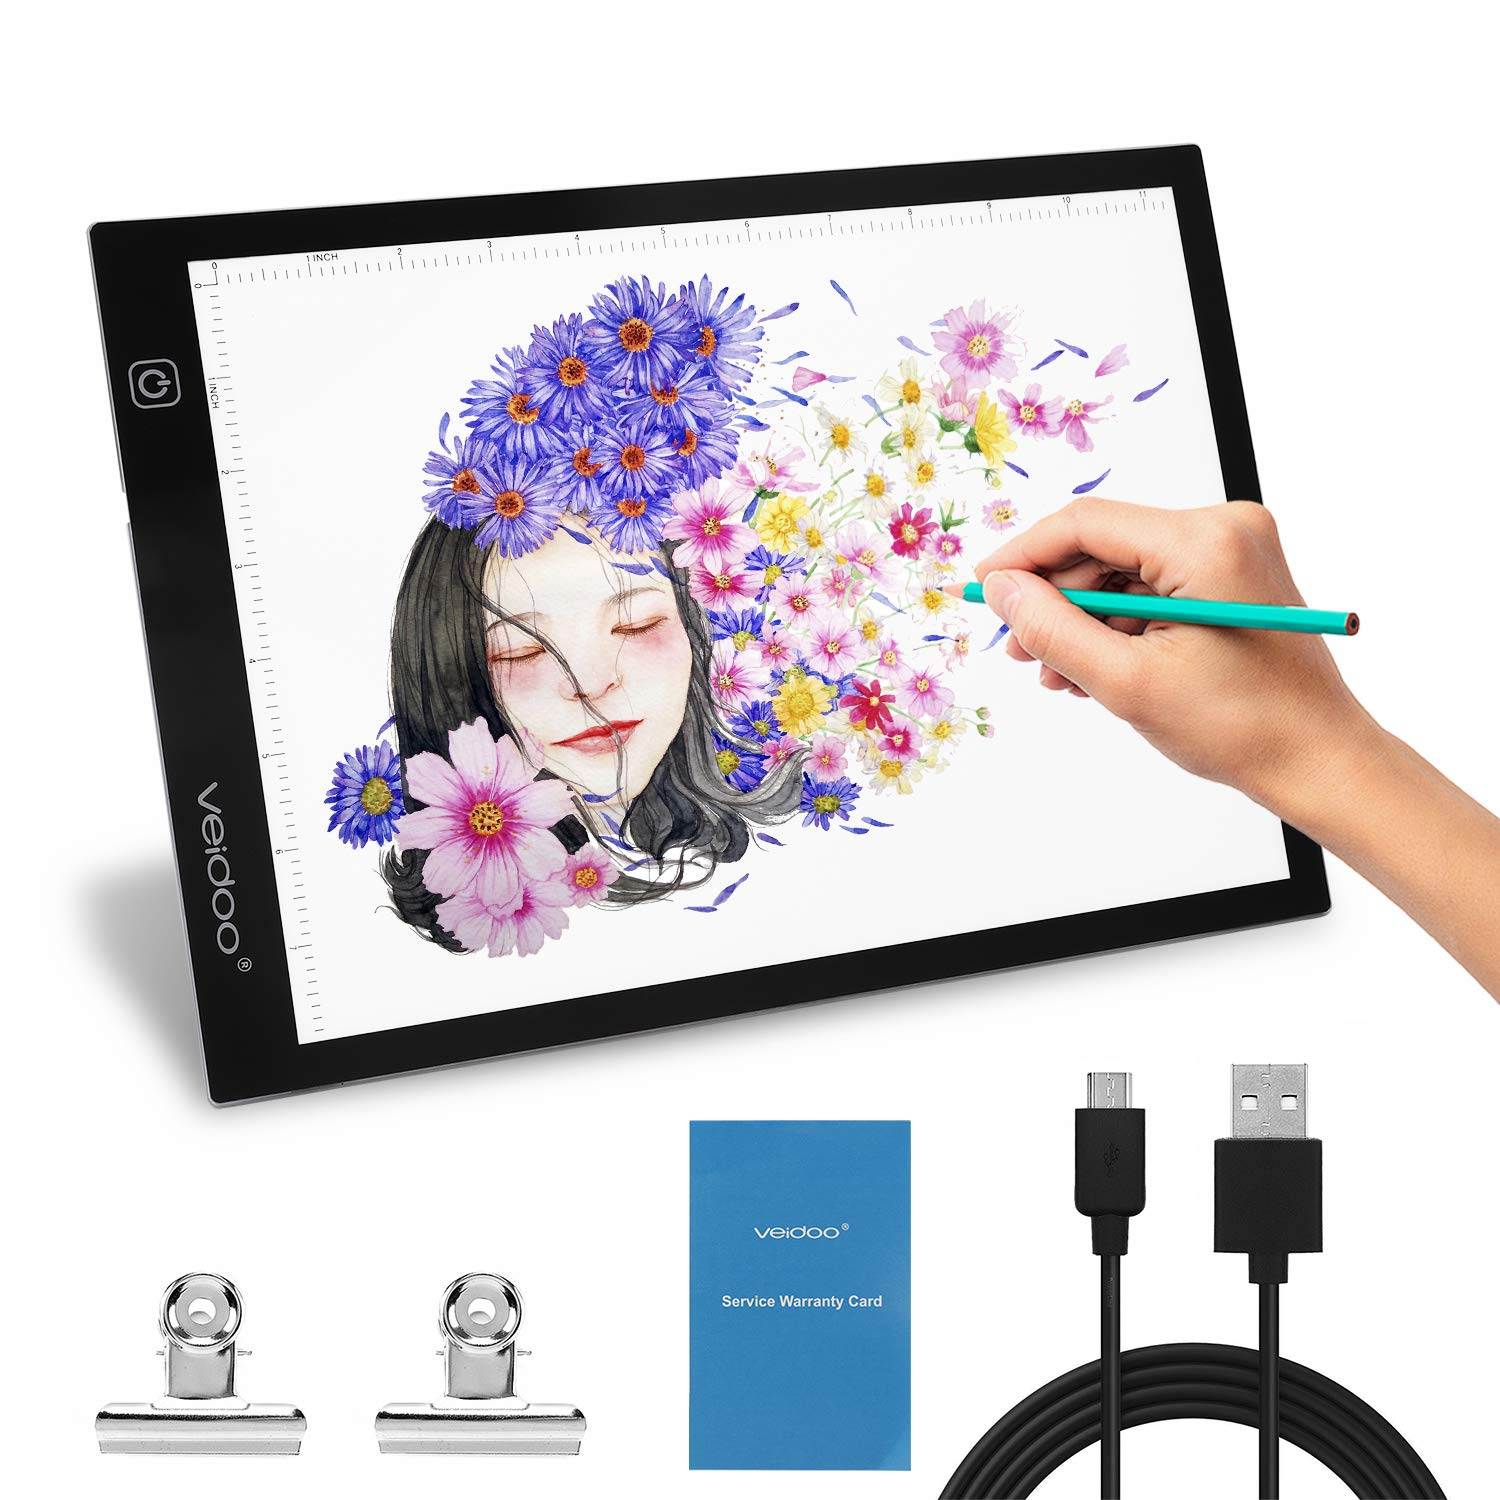 Tracing Light Box, Veidoo A4 LED Tracer Light Pad/Box/Board for Artists, Drawing, Sketching, Animation, X-ray Viewing, Tattoo Transferring by Veidoo